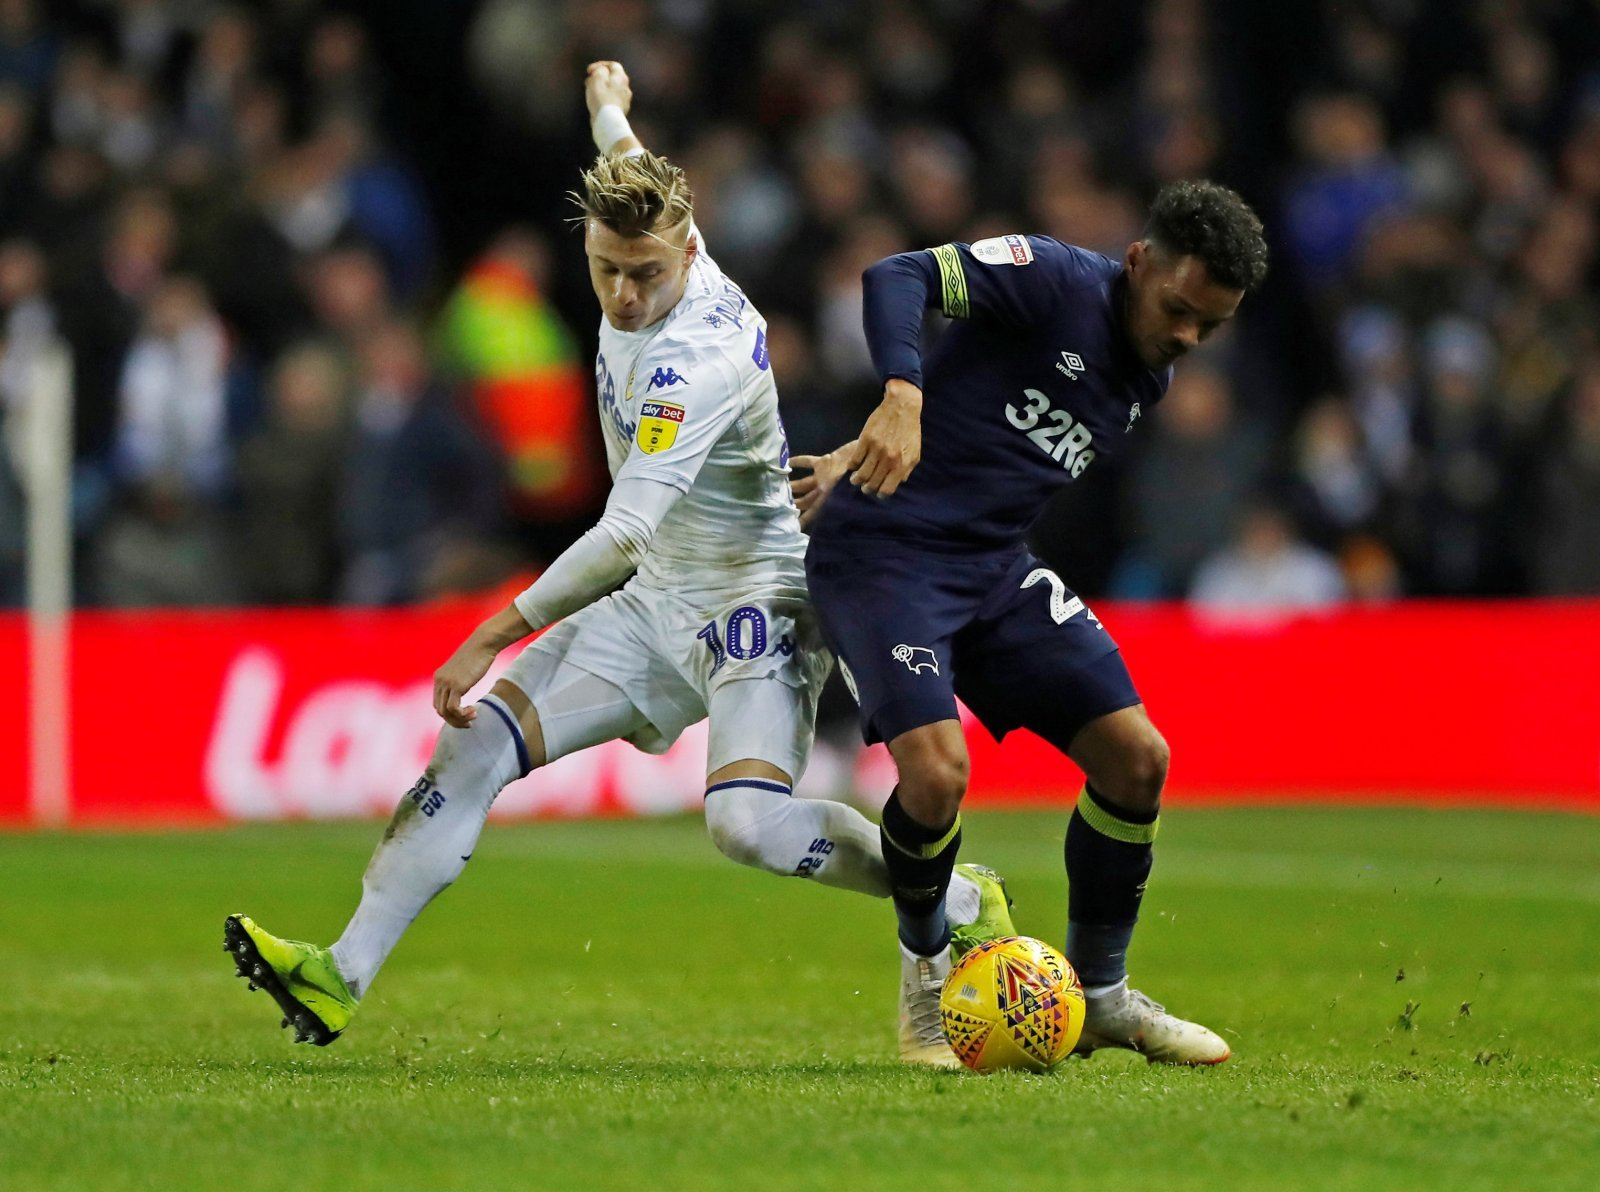 Alioski's masterclass shows why Bielsa will lead Leeds to the Premier League